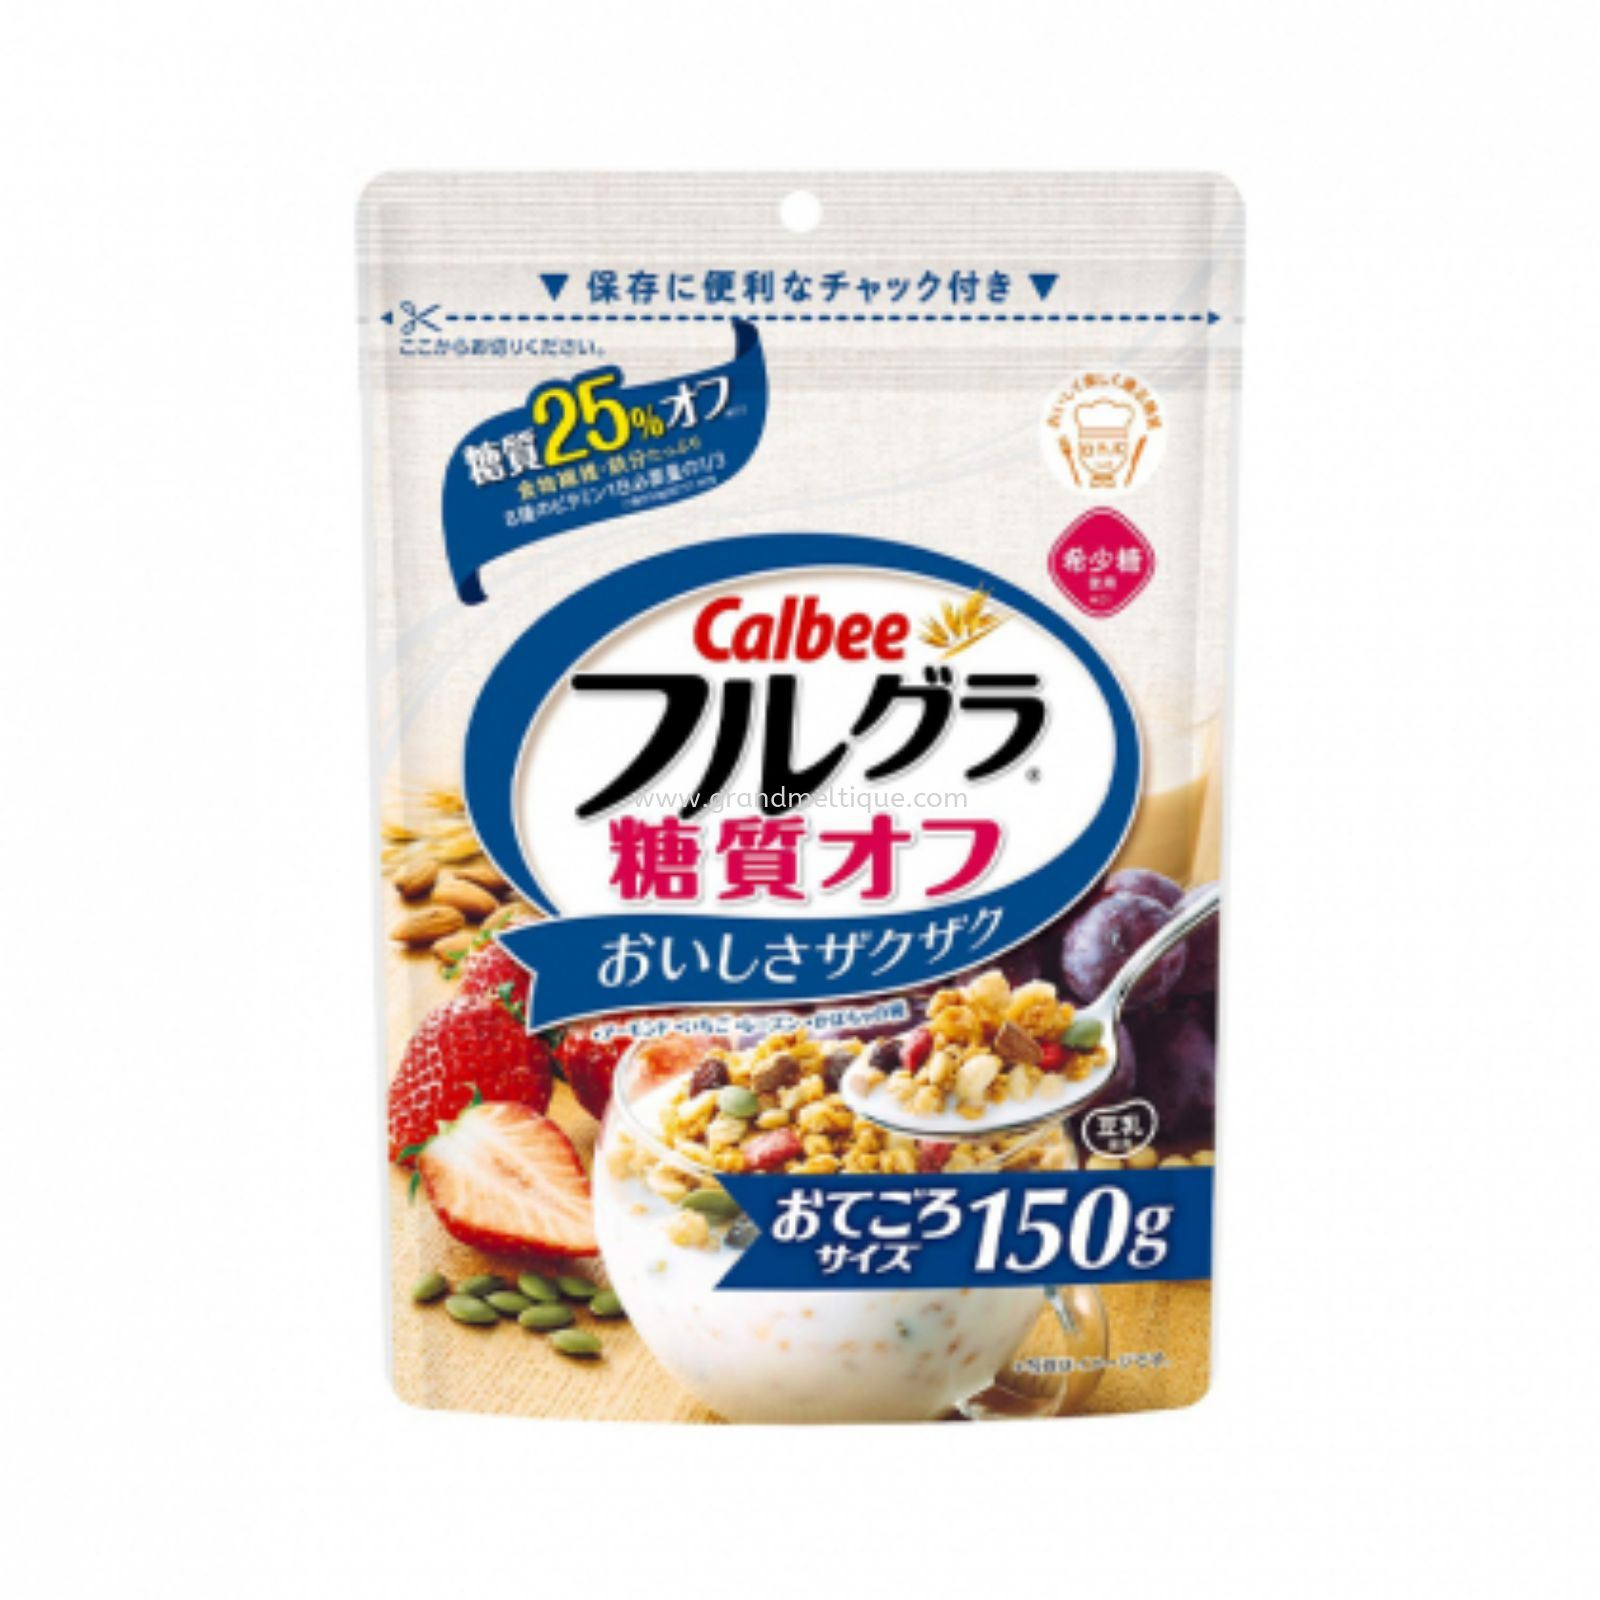 CALBEE FRUIT GRANOLA 25% LESS SUGAR 卡乐比水果谷粮减糖150G